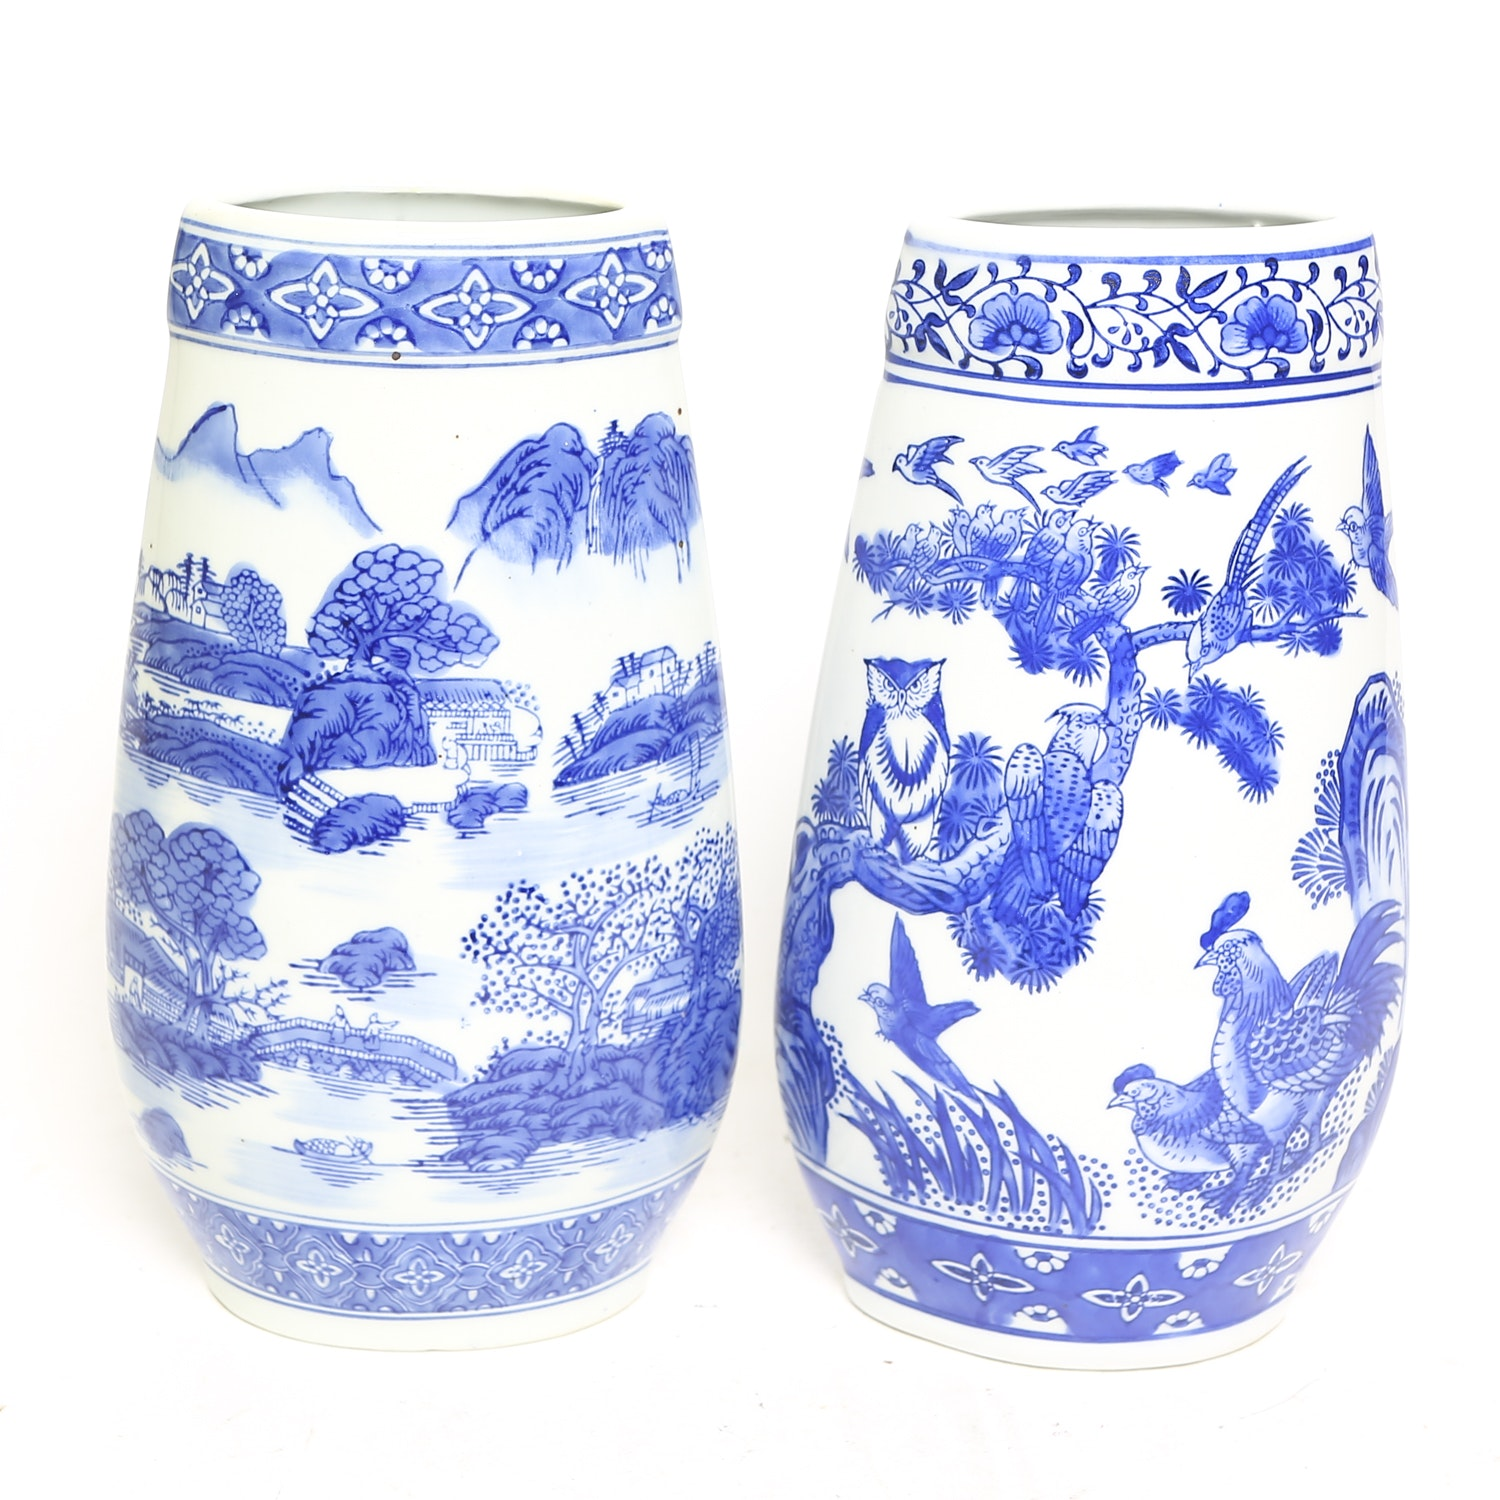 Blue and White Chinese Vases from Formalities by Baum Brothers